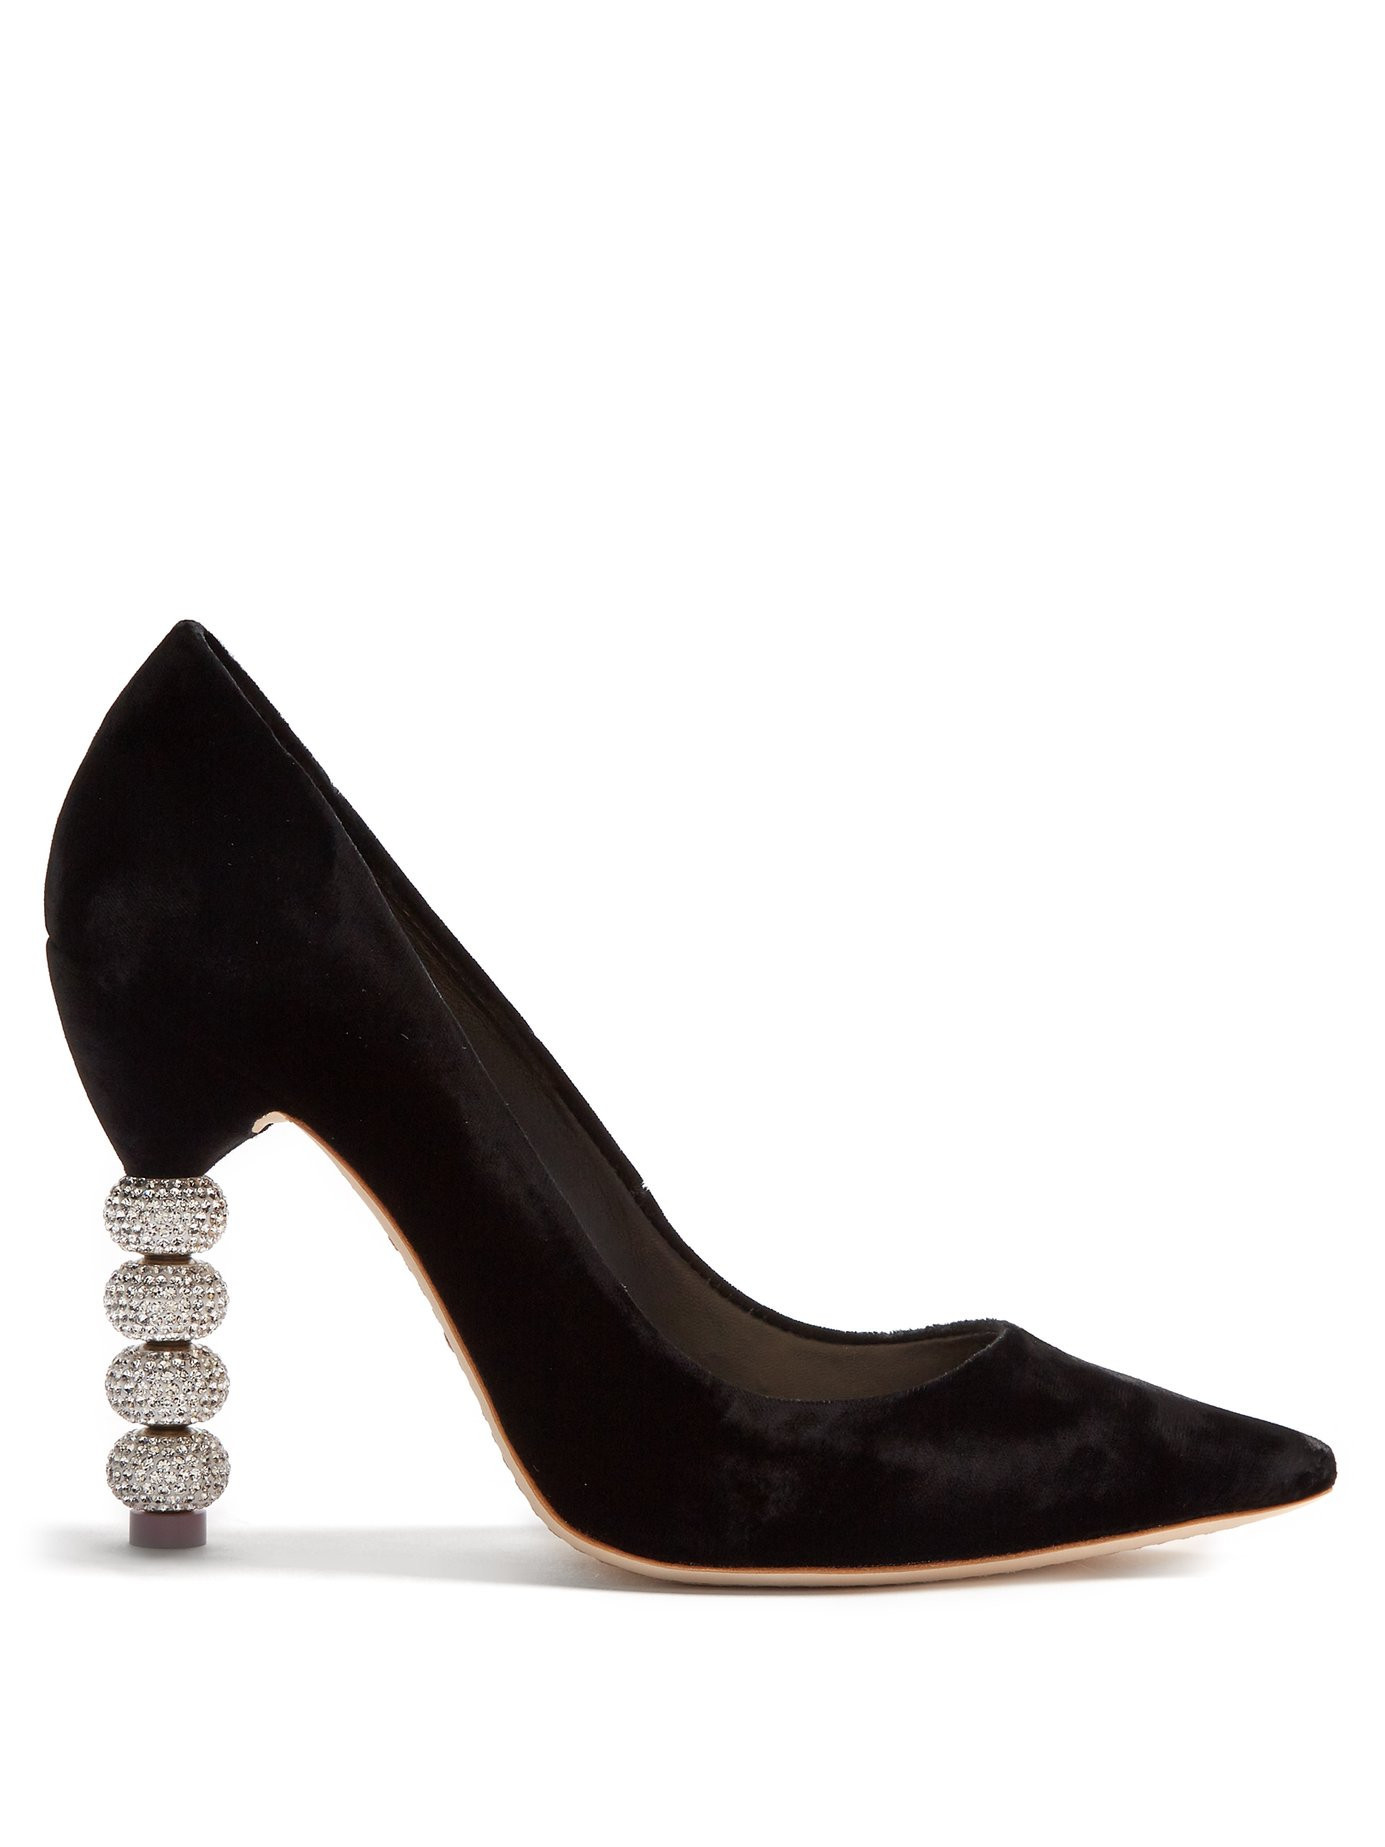 Christian louboutin pigalle spikes patent poudre 100mm pumps outlet uk are just designed for you!